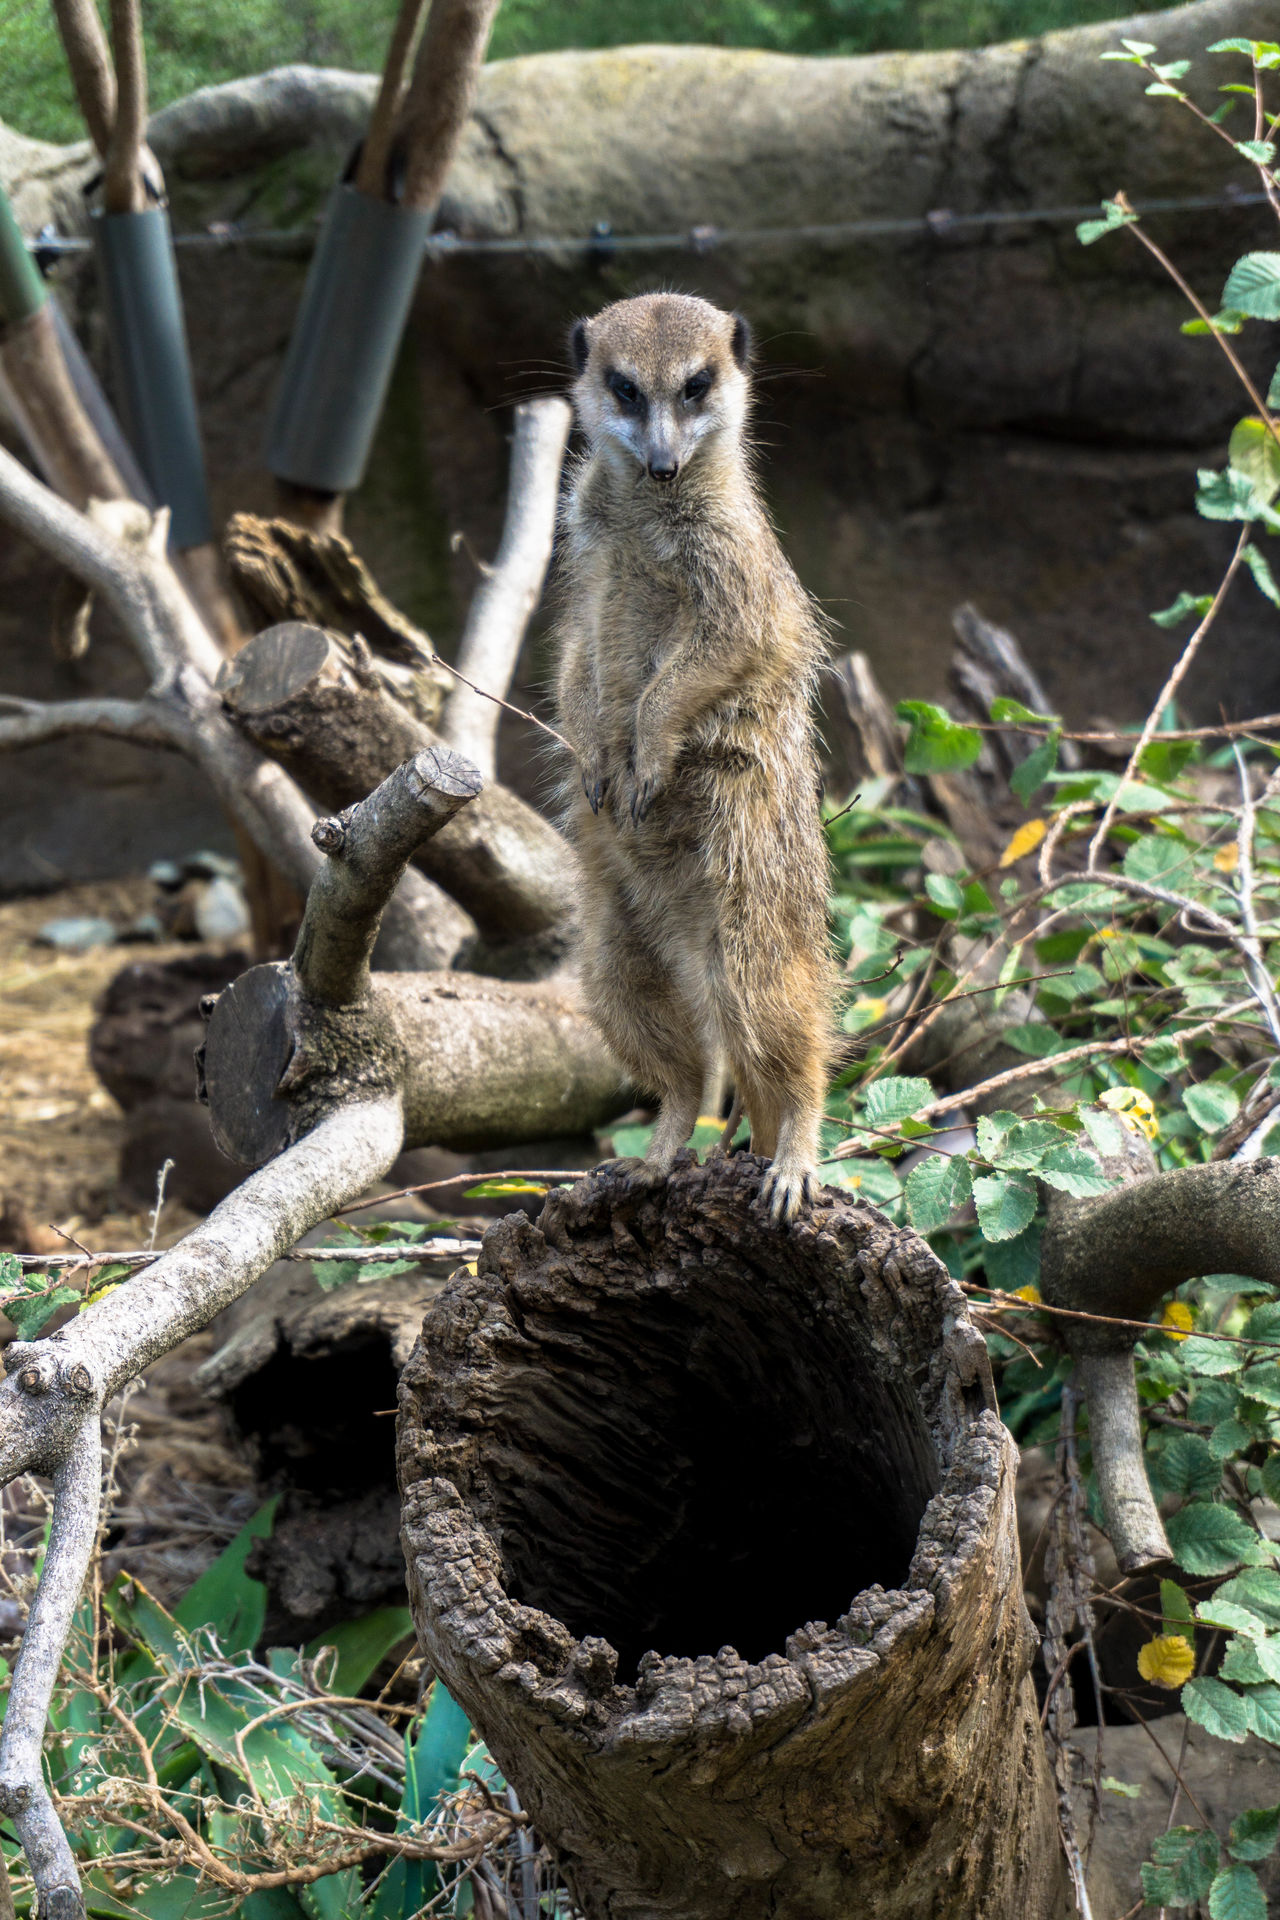 Animal Themes Animal Wildlife Animals In The Wild Day Full Length Mammal Meerkat Nature No People One Animal Outdoors Tree